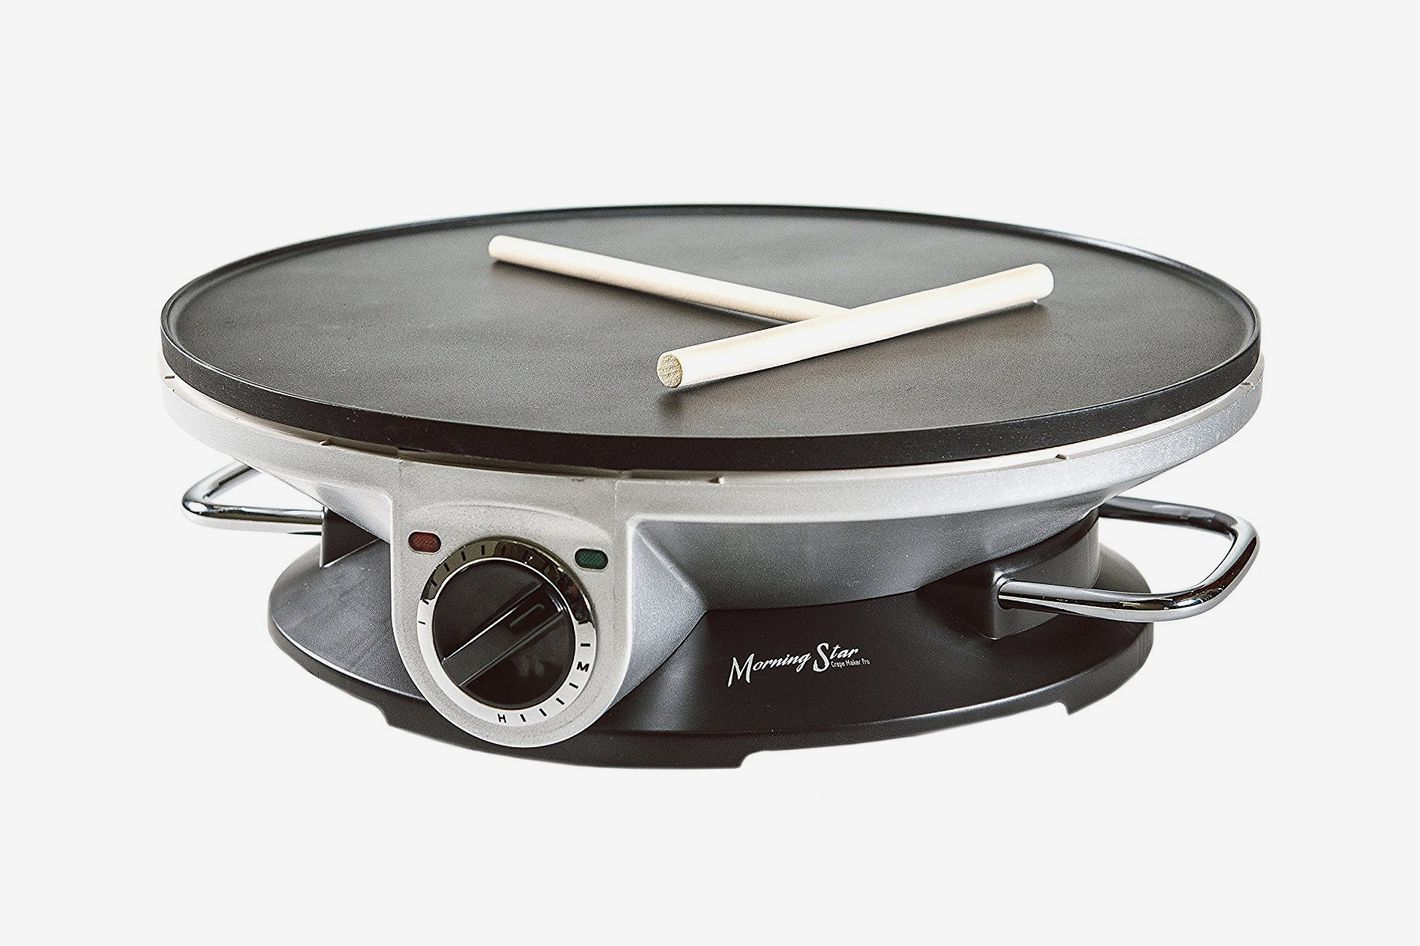 Morning Star — Crepe Maker Pro — 13 Inch Crepe Maker & Electric Griddle — Non-stick Pancake Maker